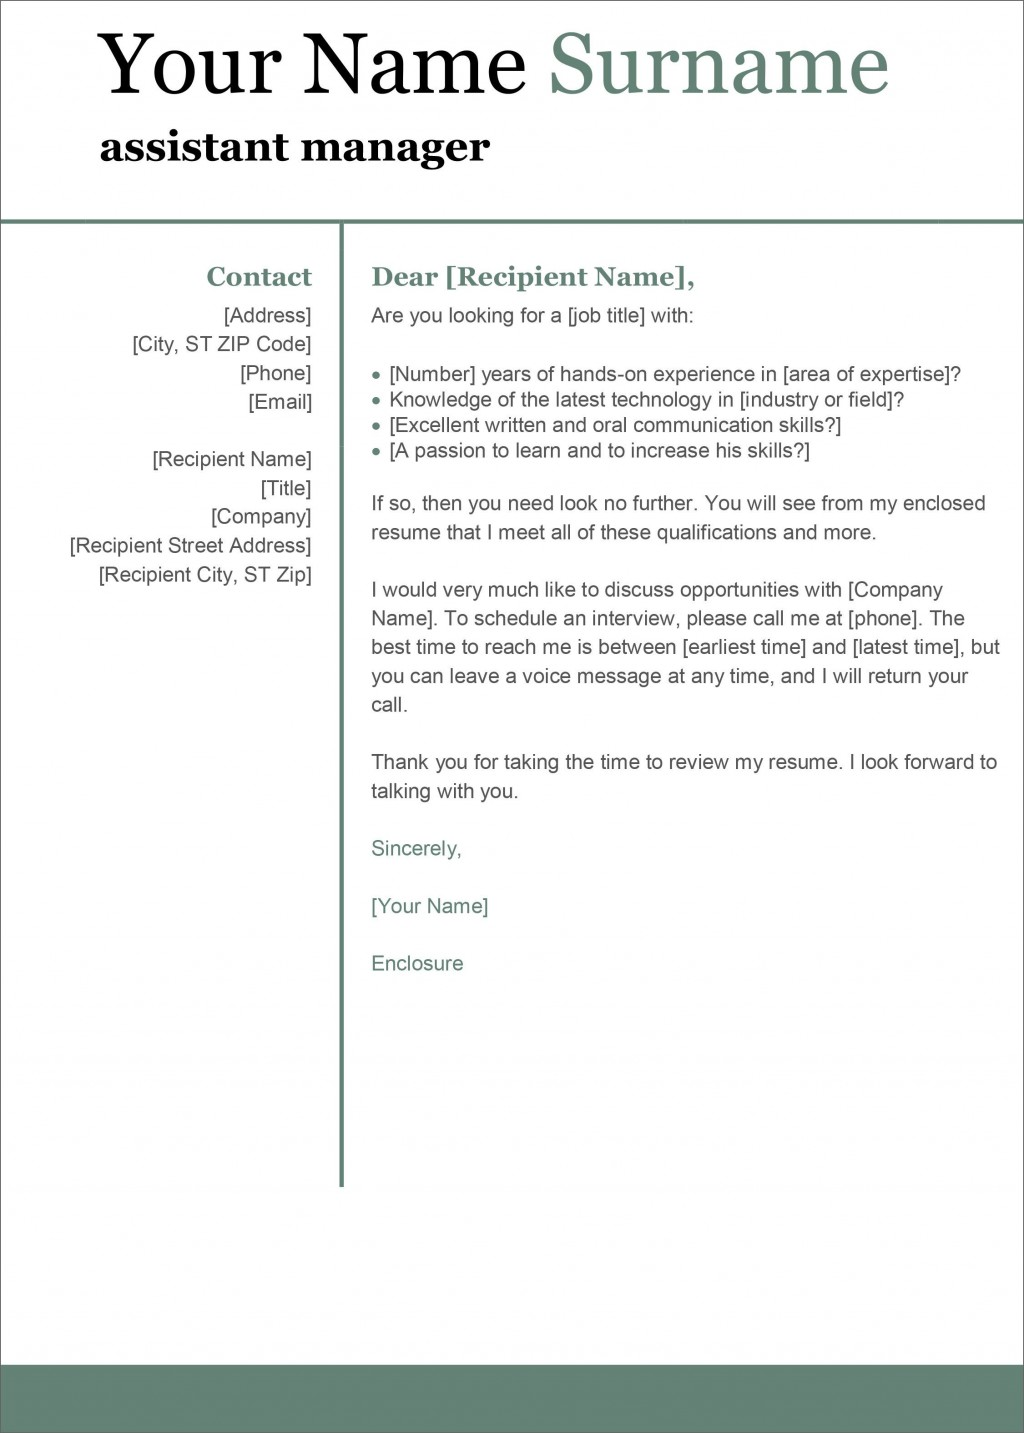 004 Singular Cover Letter Template Microsoft Word Inspiration  2007 FaxLarge